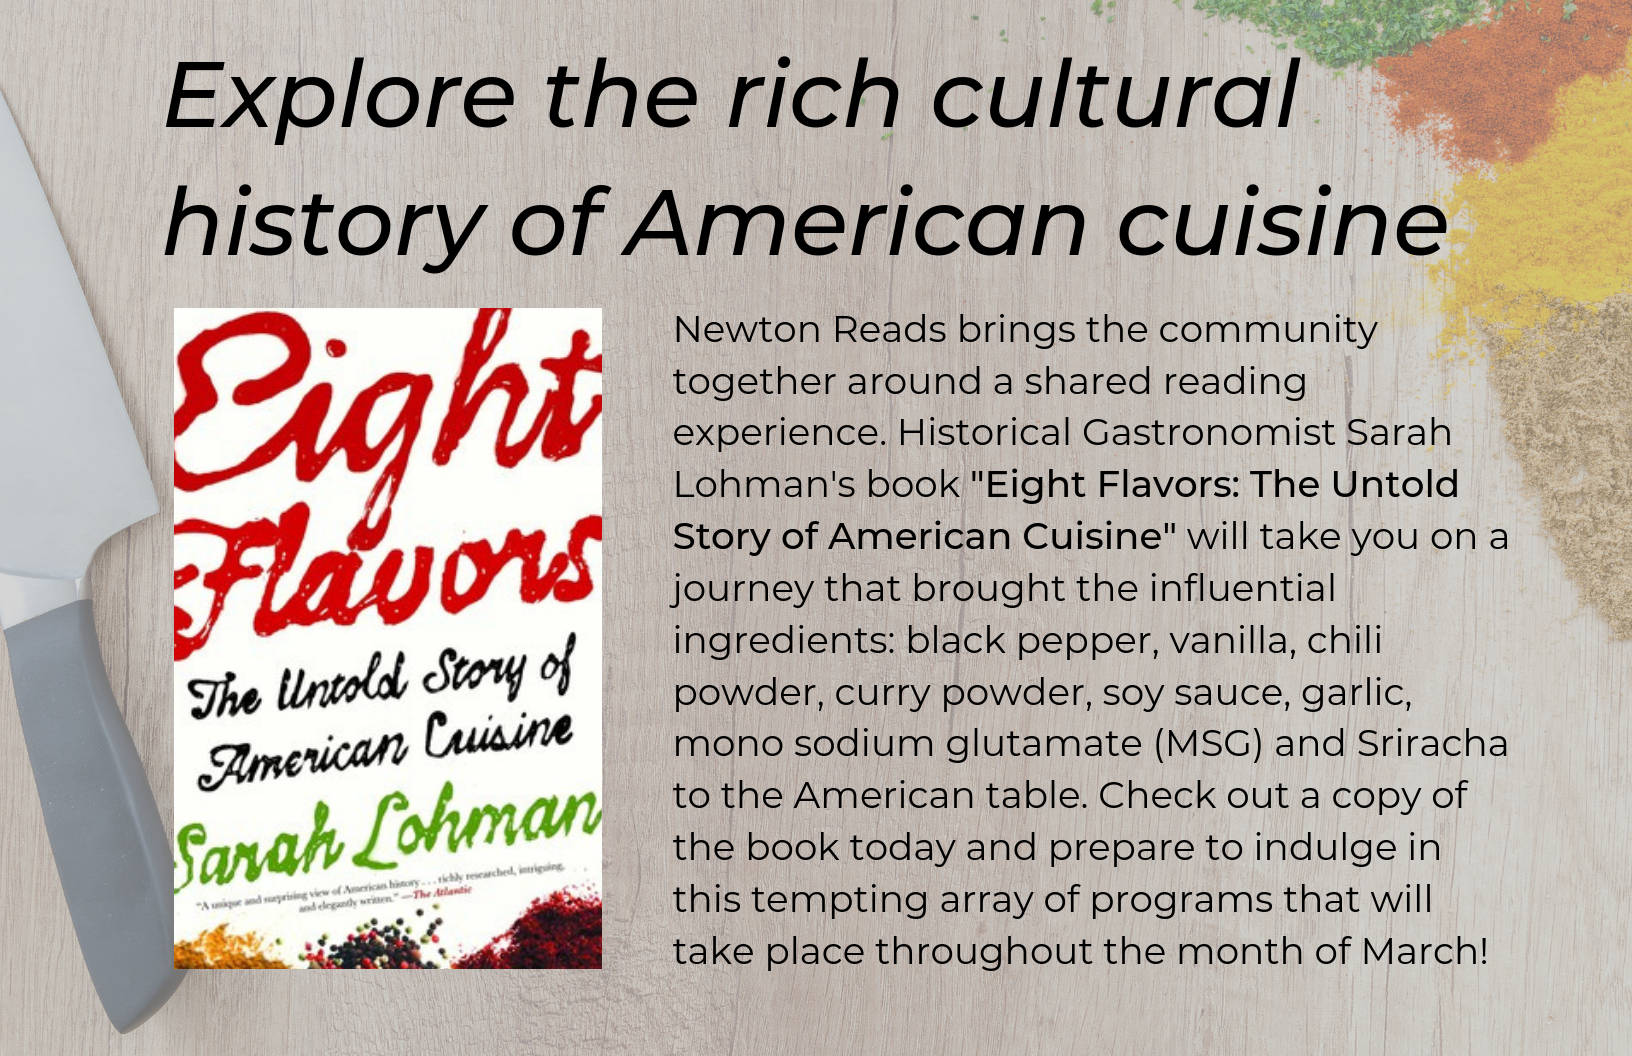 explore the rich cultural history of american cuisine  Our 2019 Newton Reads selection is Eight Flavors: The Untold Story of American Cuisine by Sarah Lohman, which examines how the flavors of black pepper, vanilla, chili powder, curry powder, soy sauce, garlic, monosodium glutamate (MSG) and Sriracha, came to this country and ended up on our dinner tables.